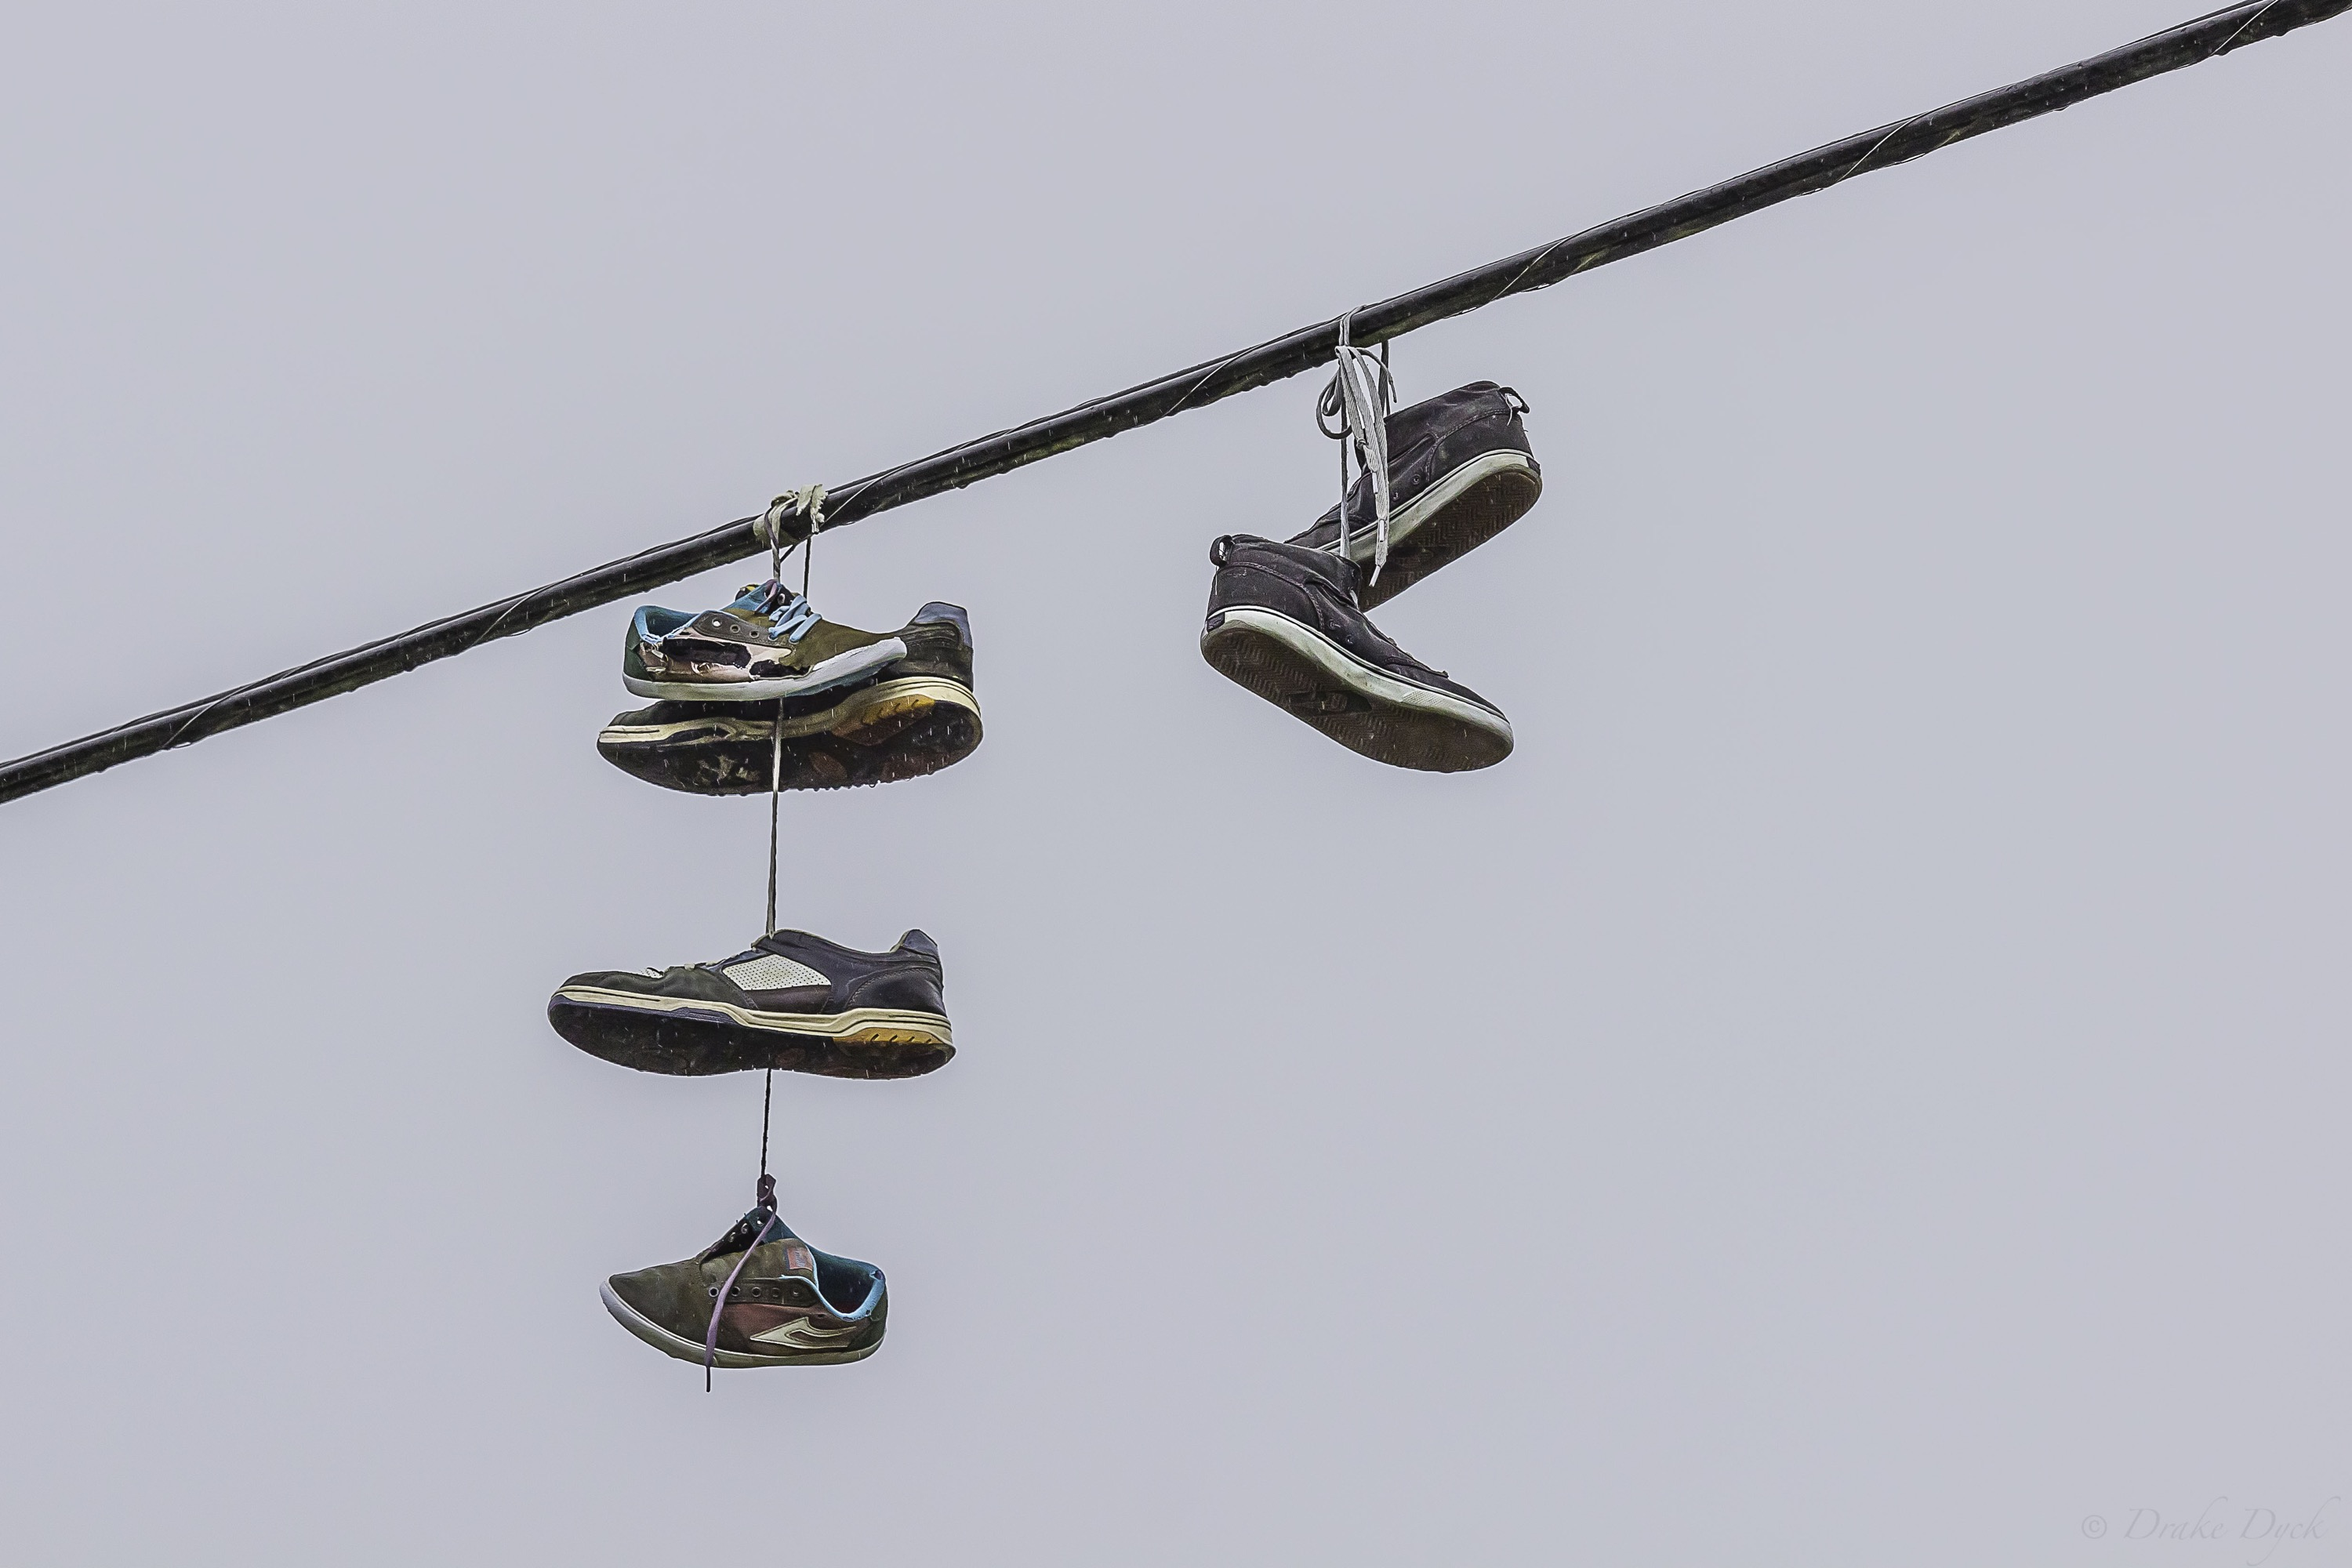 multiple shoes caught up on power wires